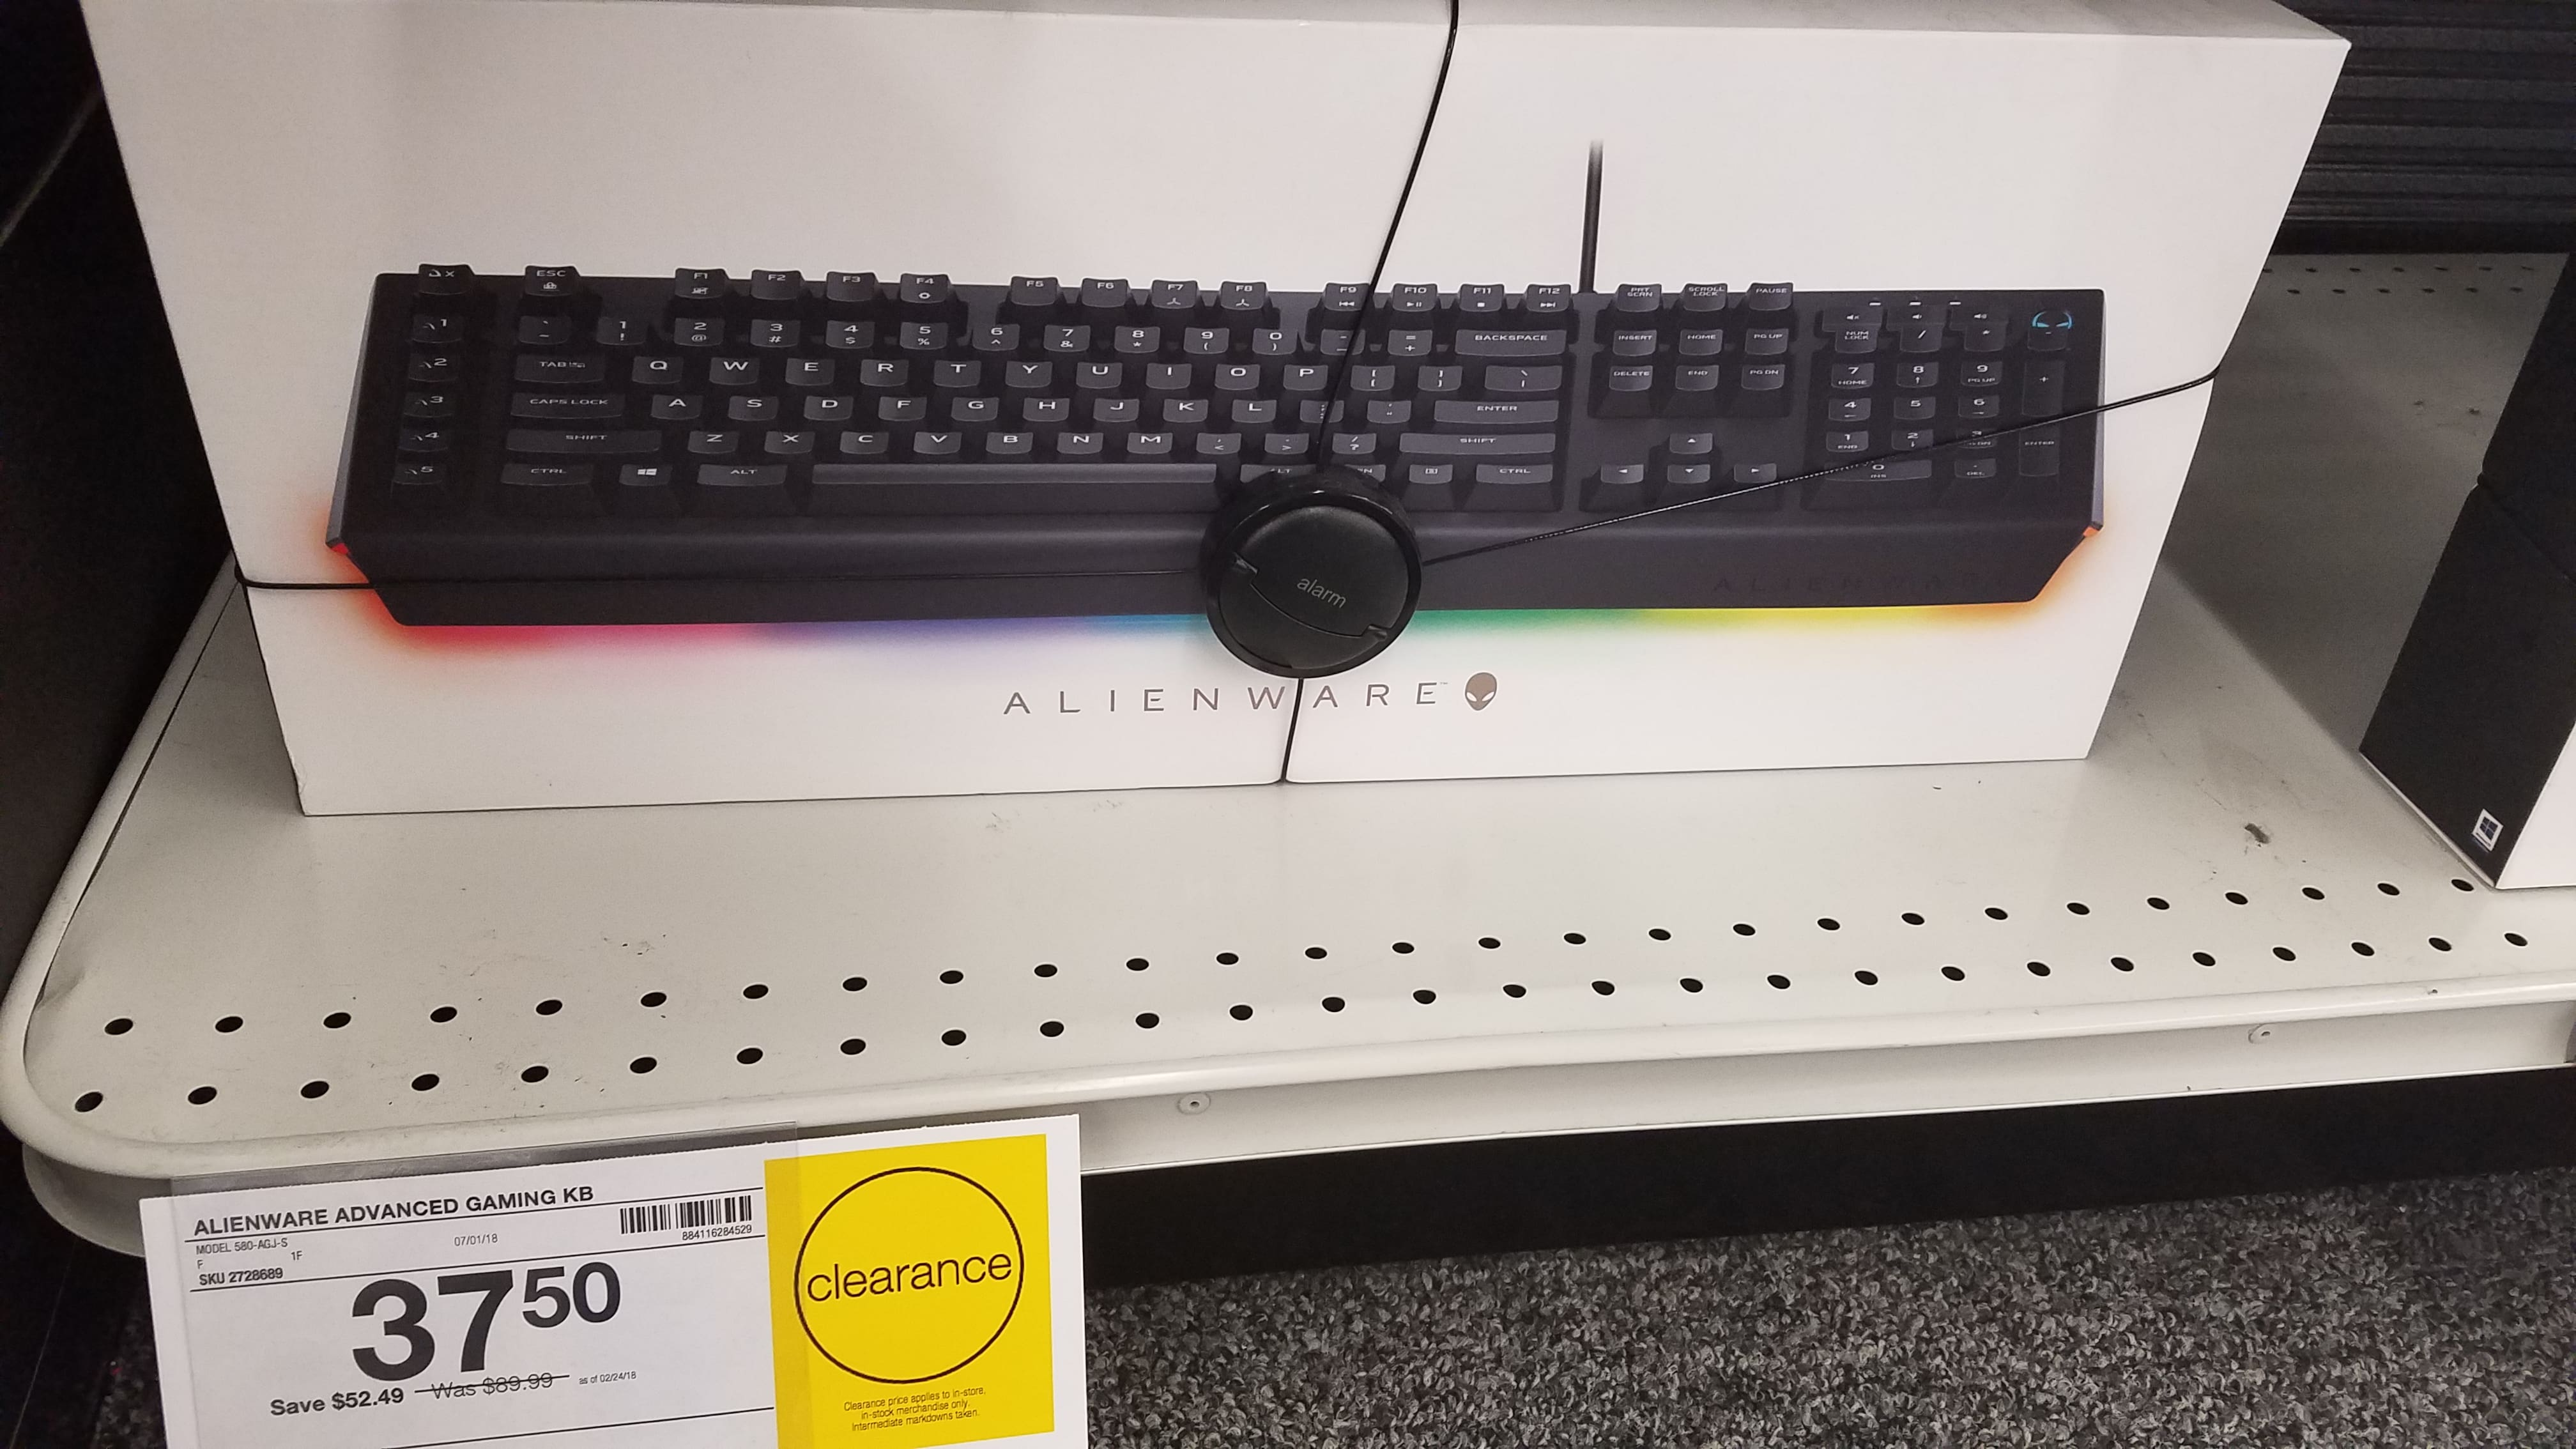 625506a0c02 Staples clearance YMMV - $37.50 Alienware Advanced Gaming AW568 USB Mechanical  Keyboard